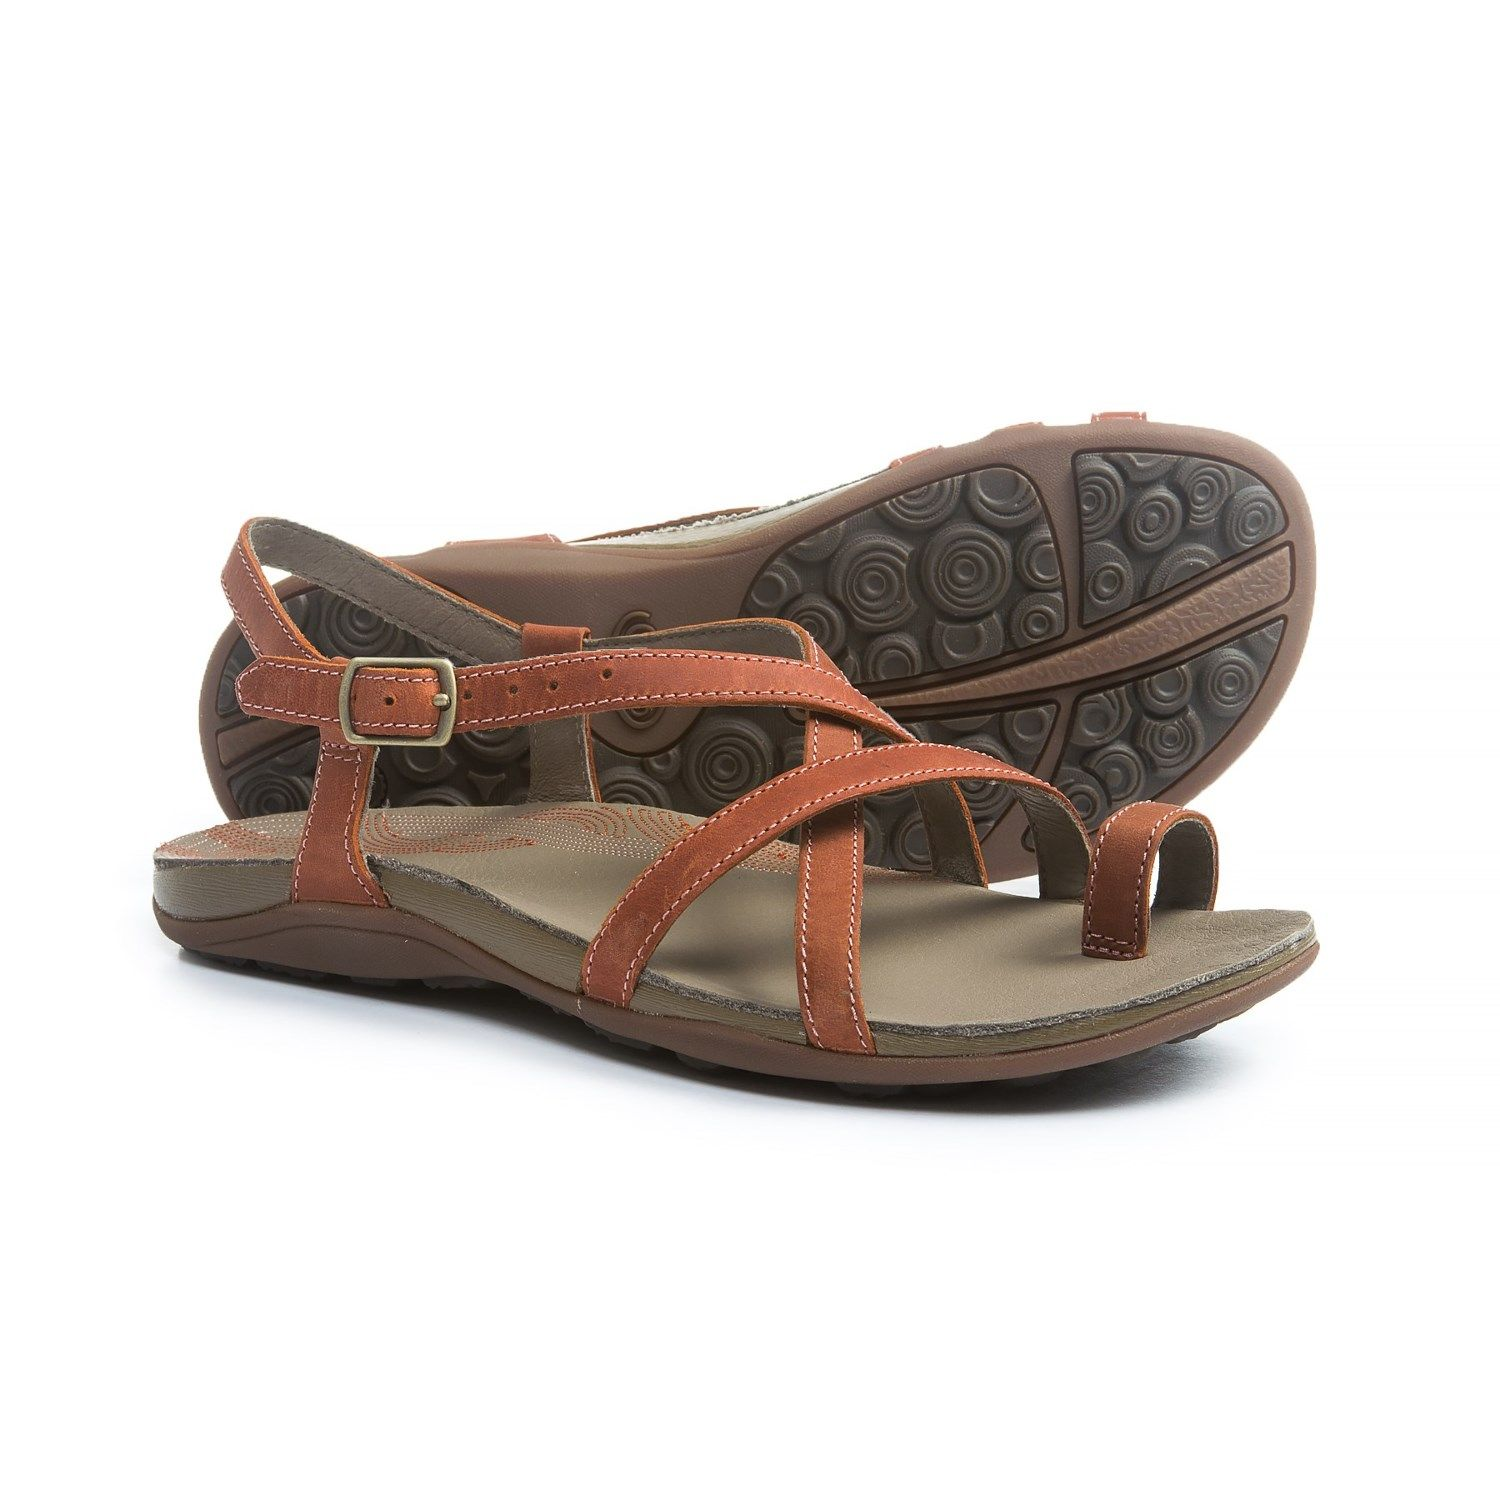 Chaco Dorra Leather Sandals (For Women